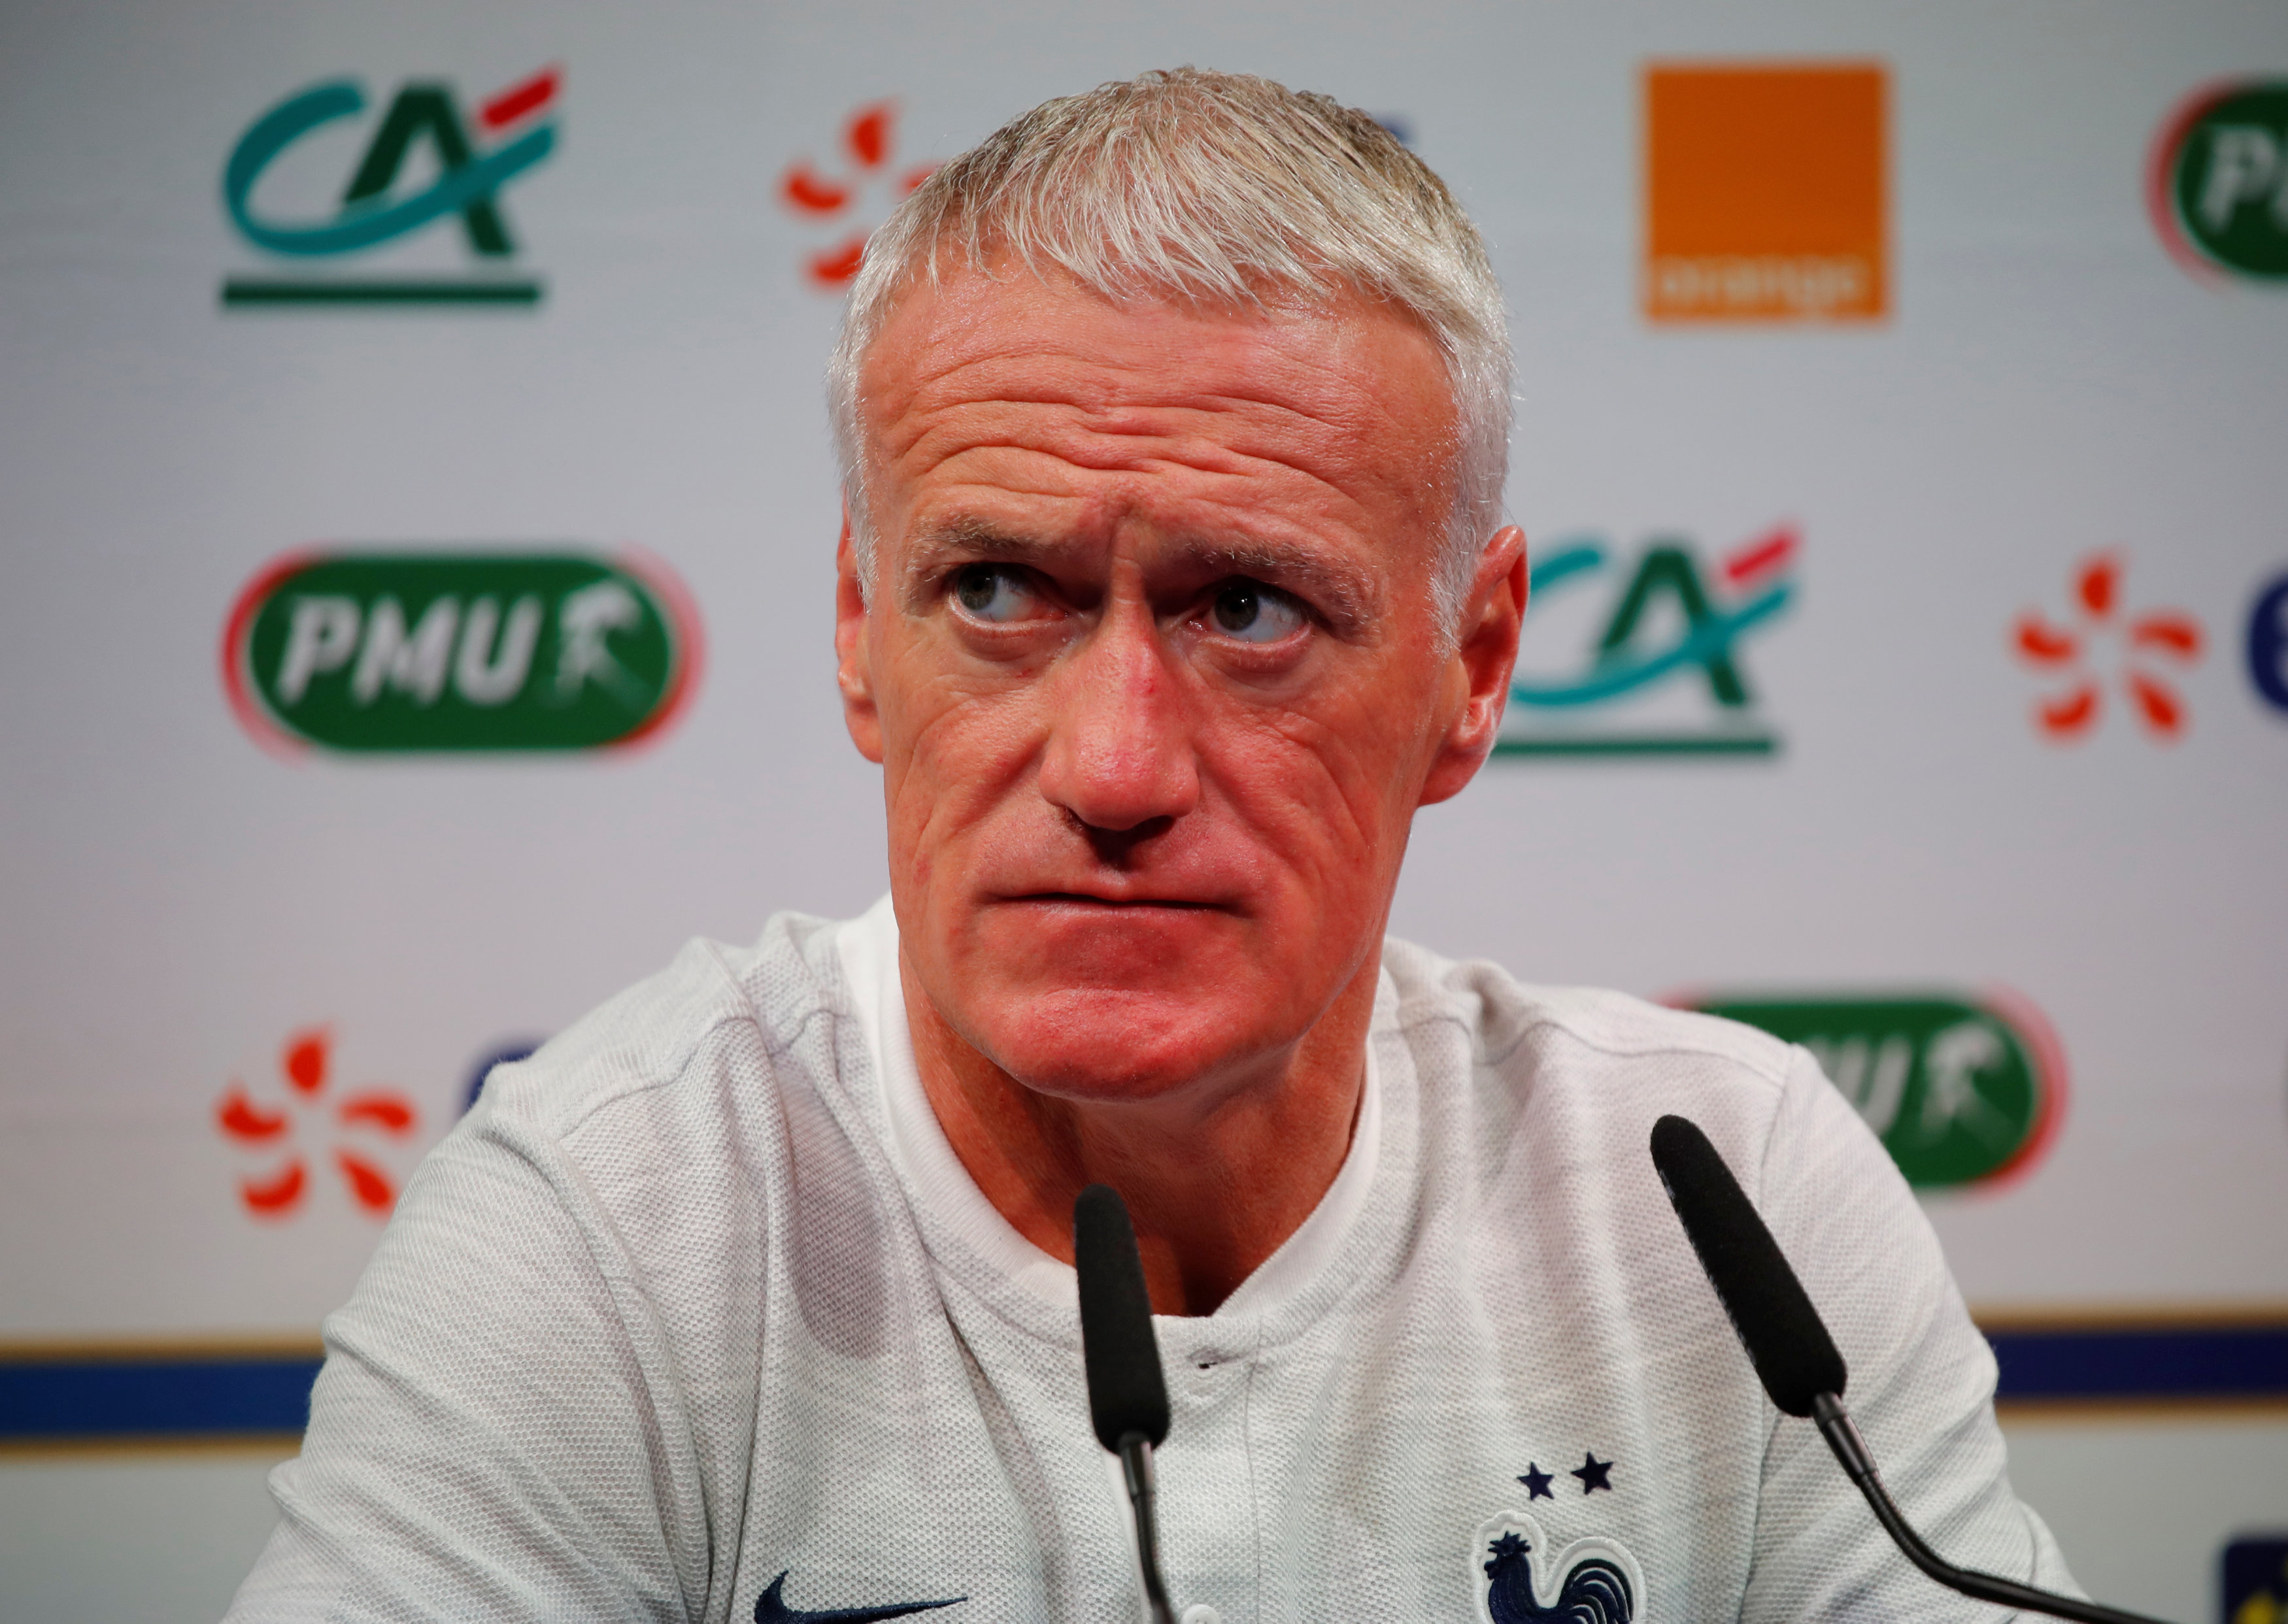 Football: World champions France face Germany in UEFA Nations League